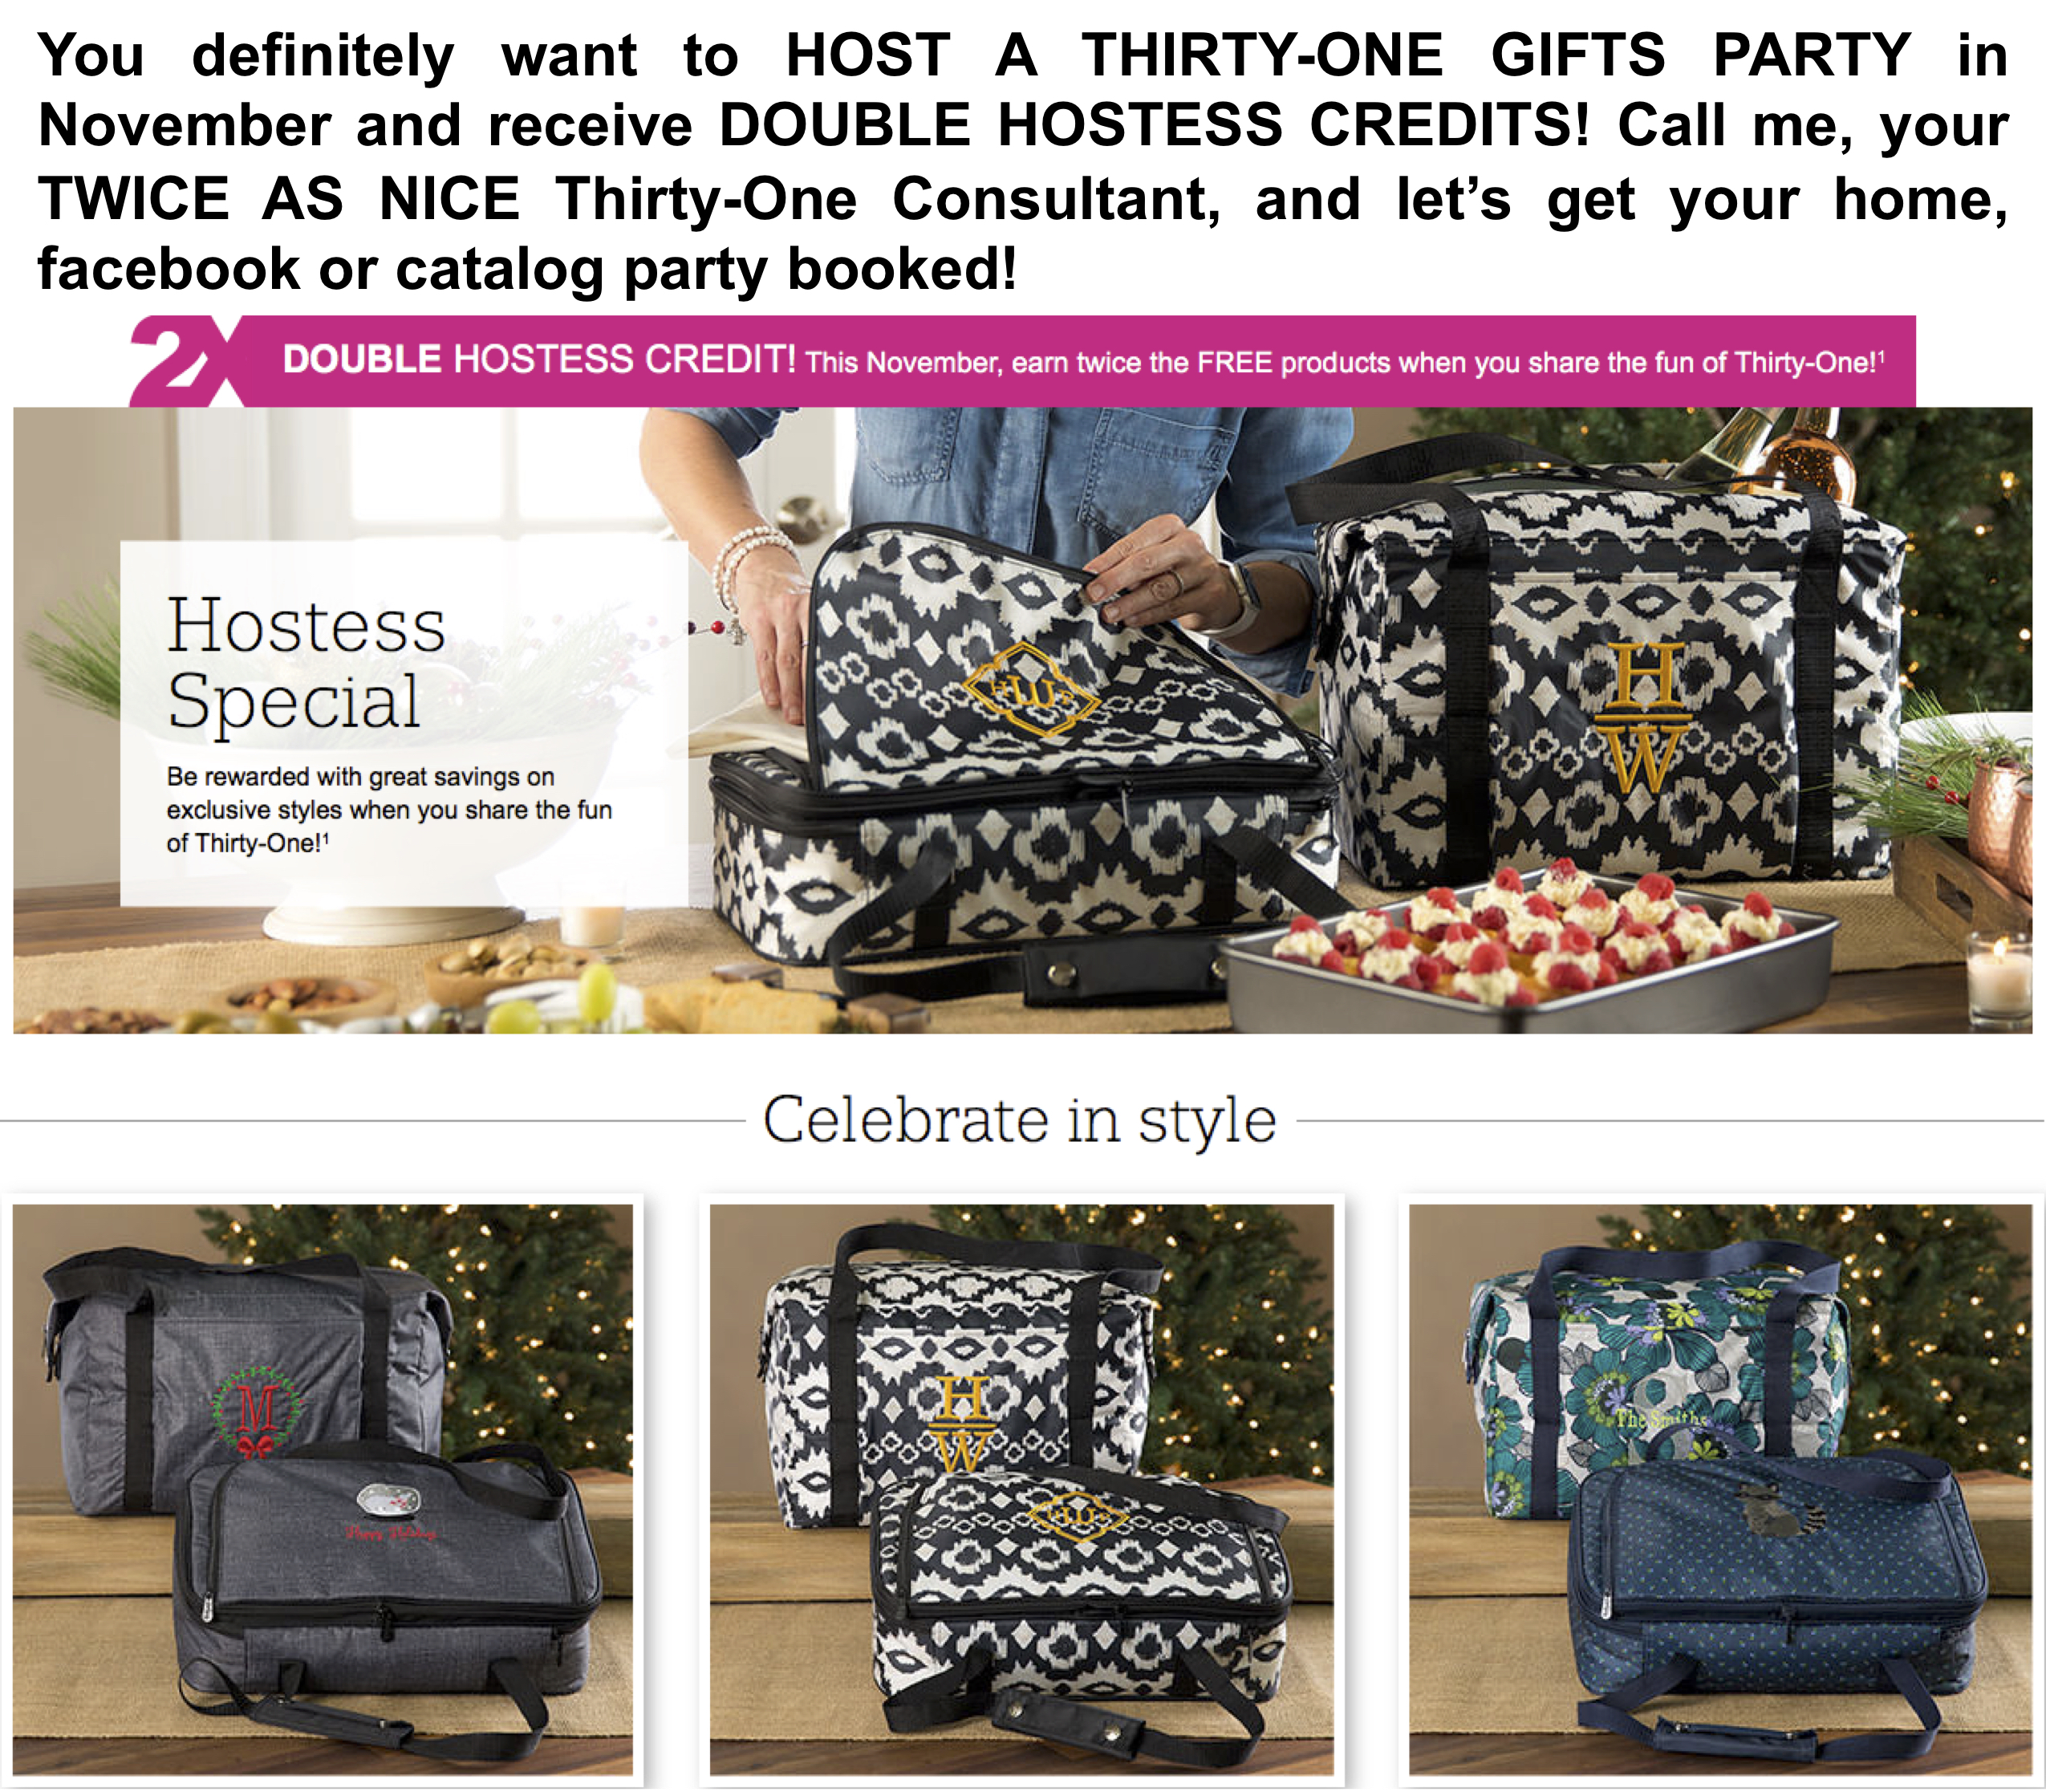 Thirty-One Gifts Double Hostess Credits